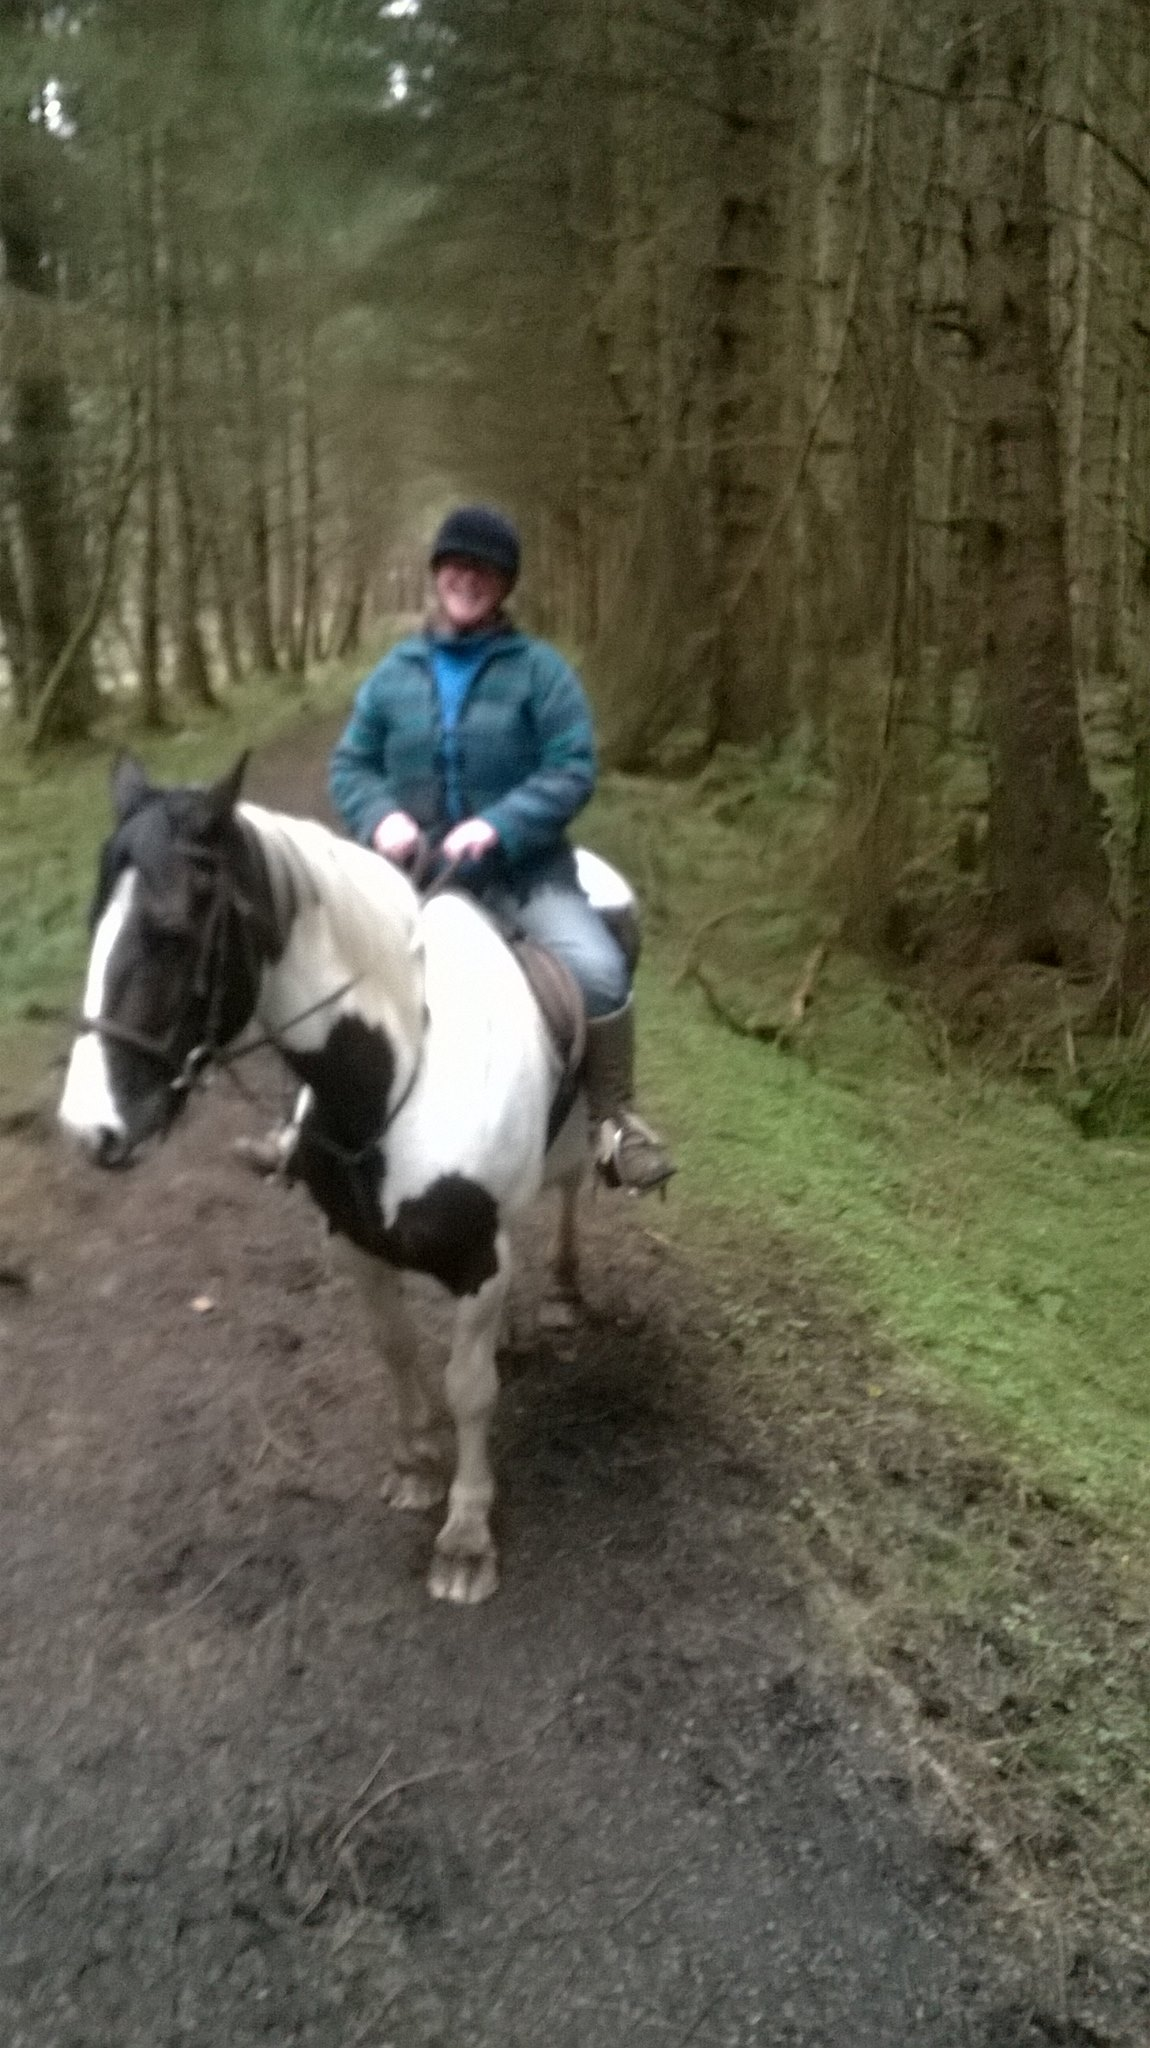 Riding through The Bonny Glen, Donegal